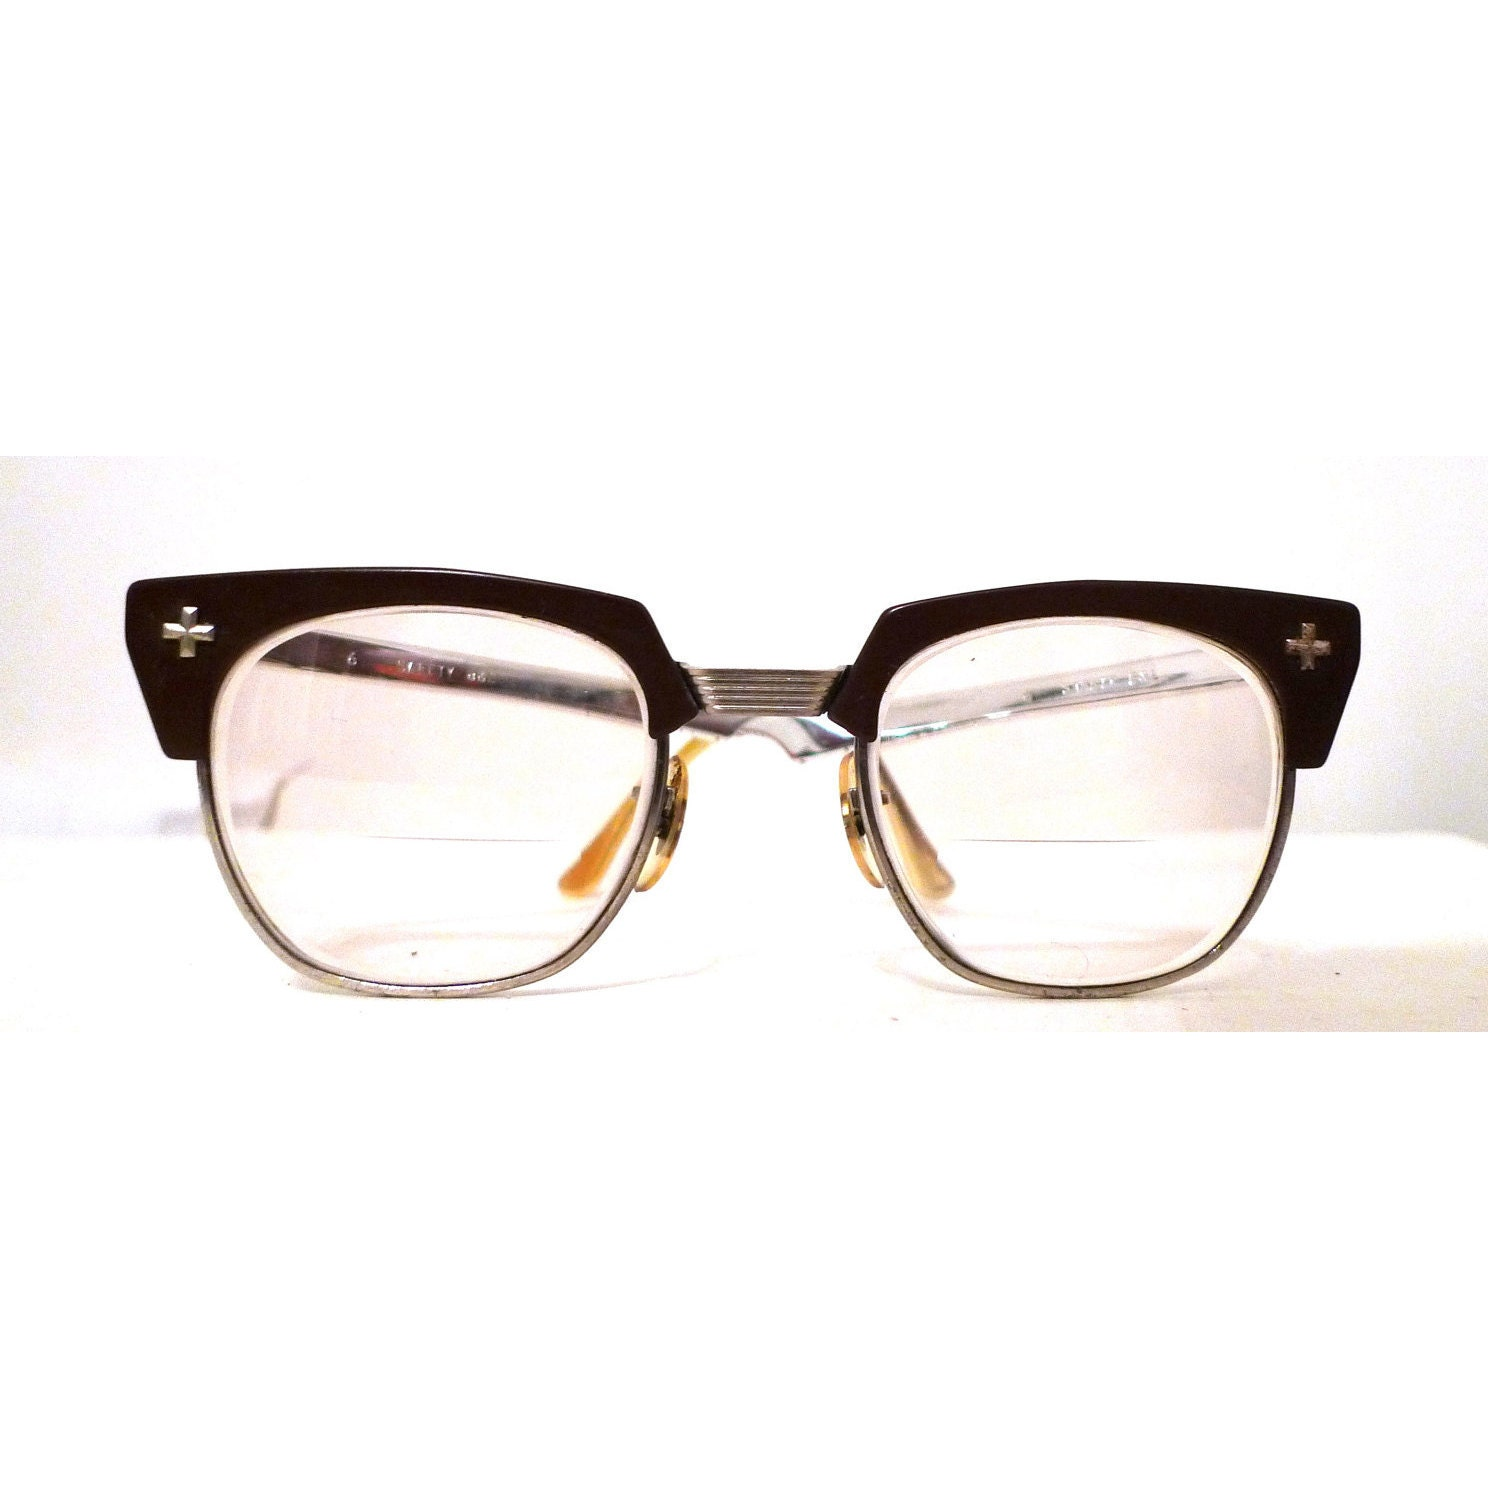 Sears Optical Ray Ban Eyeglasses